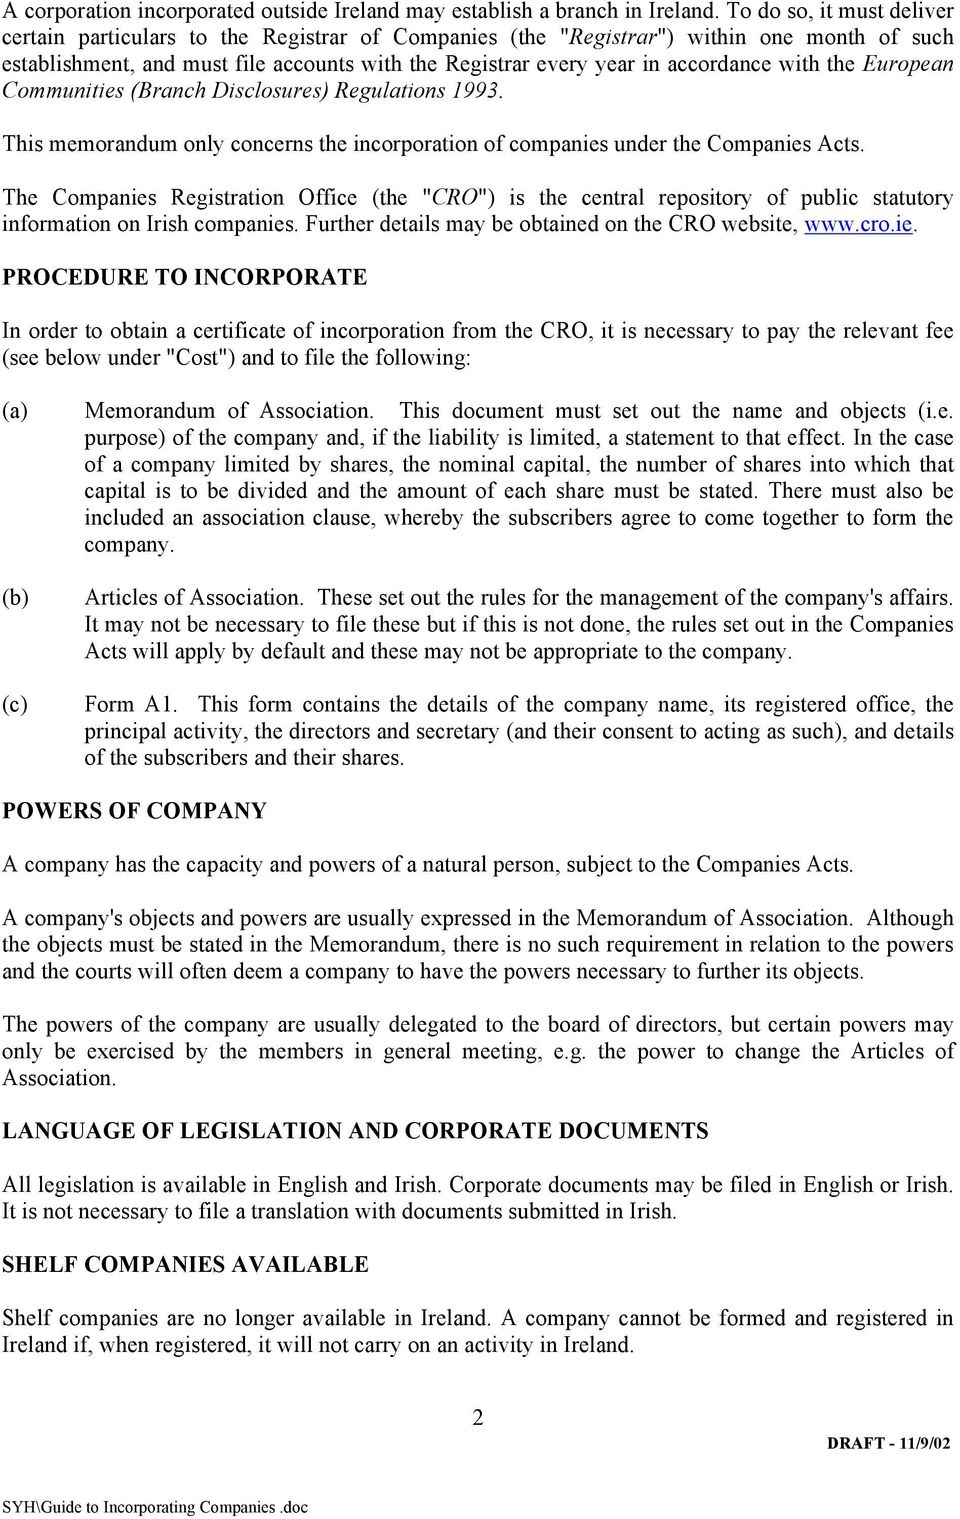 accordance with the European Communities (Branch Disclosures) Regulations 1993. This memorandum only concerns the incorporation of companies under the Companies Acts.